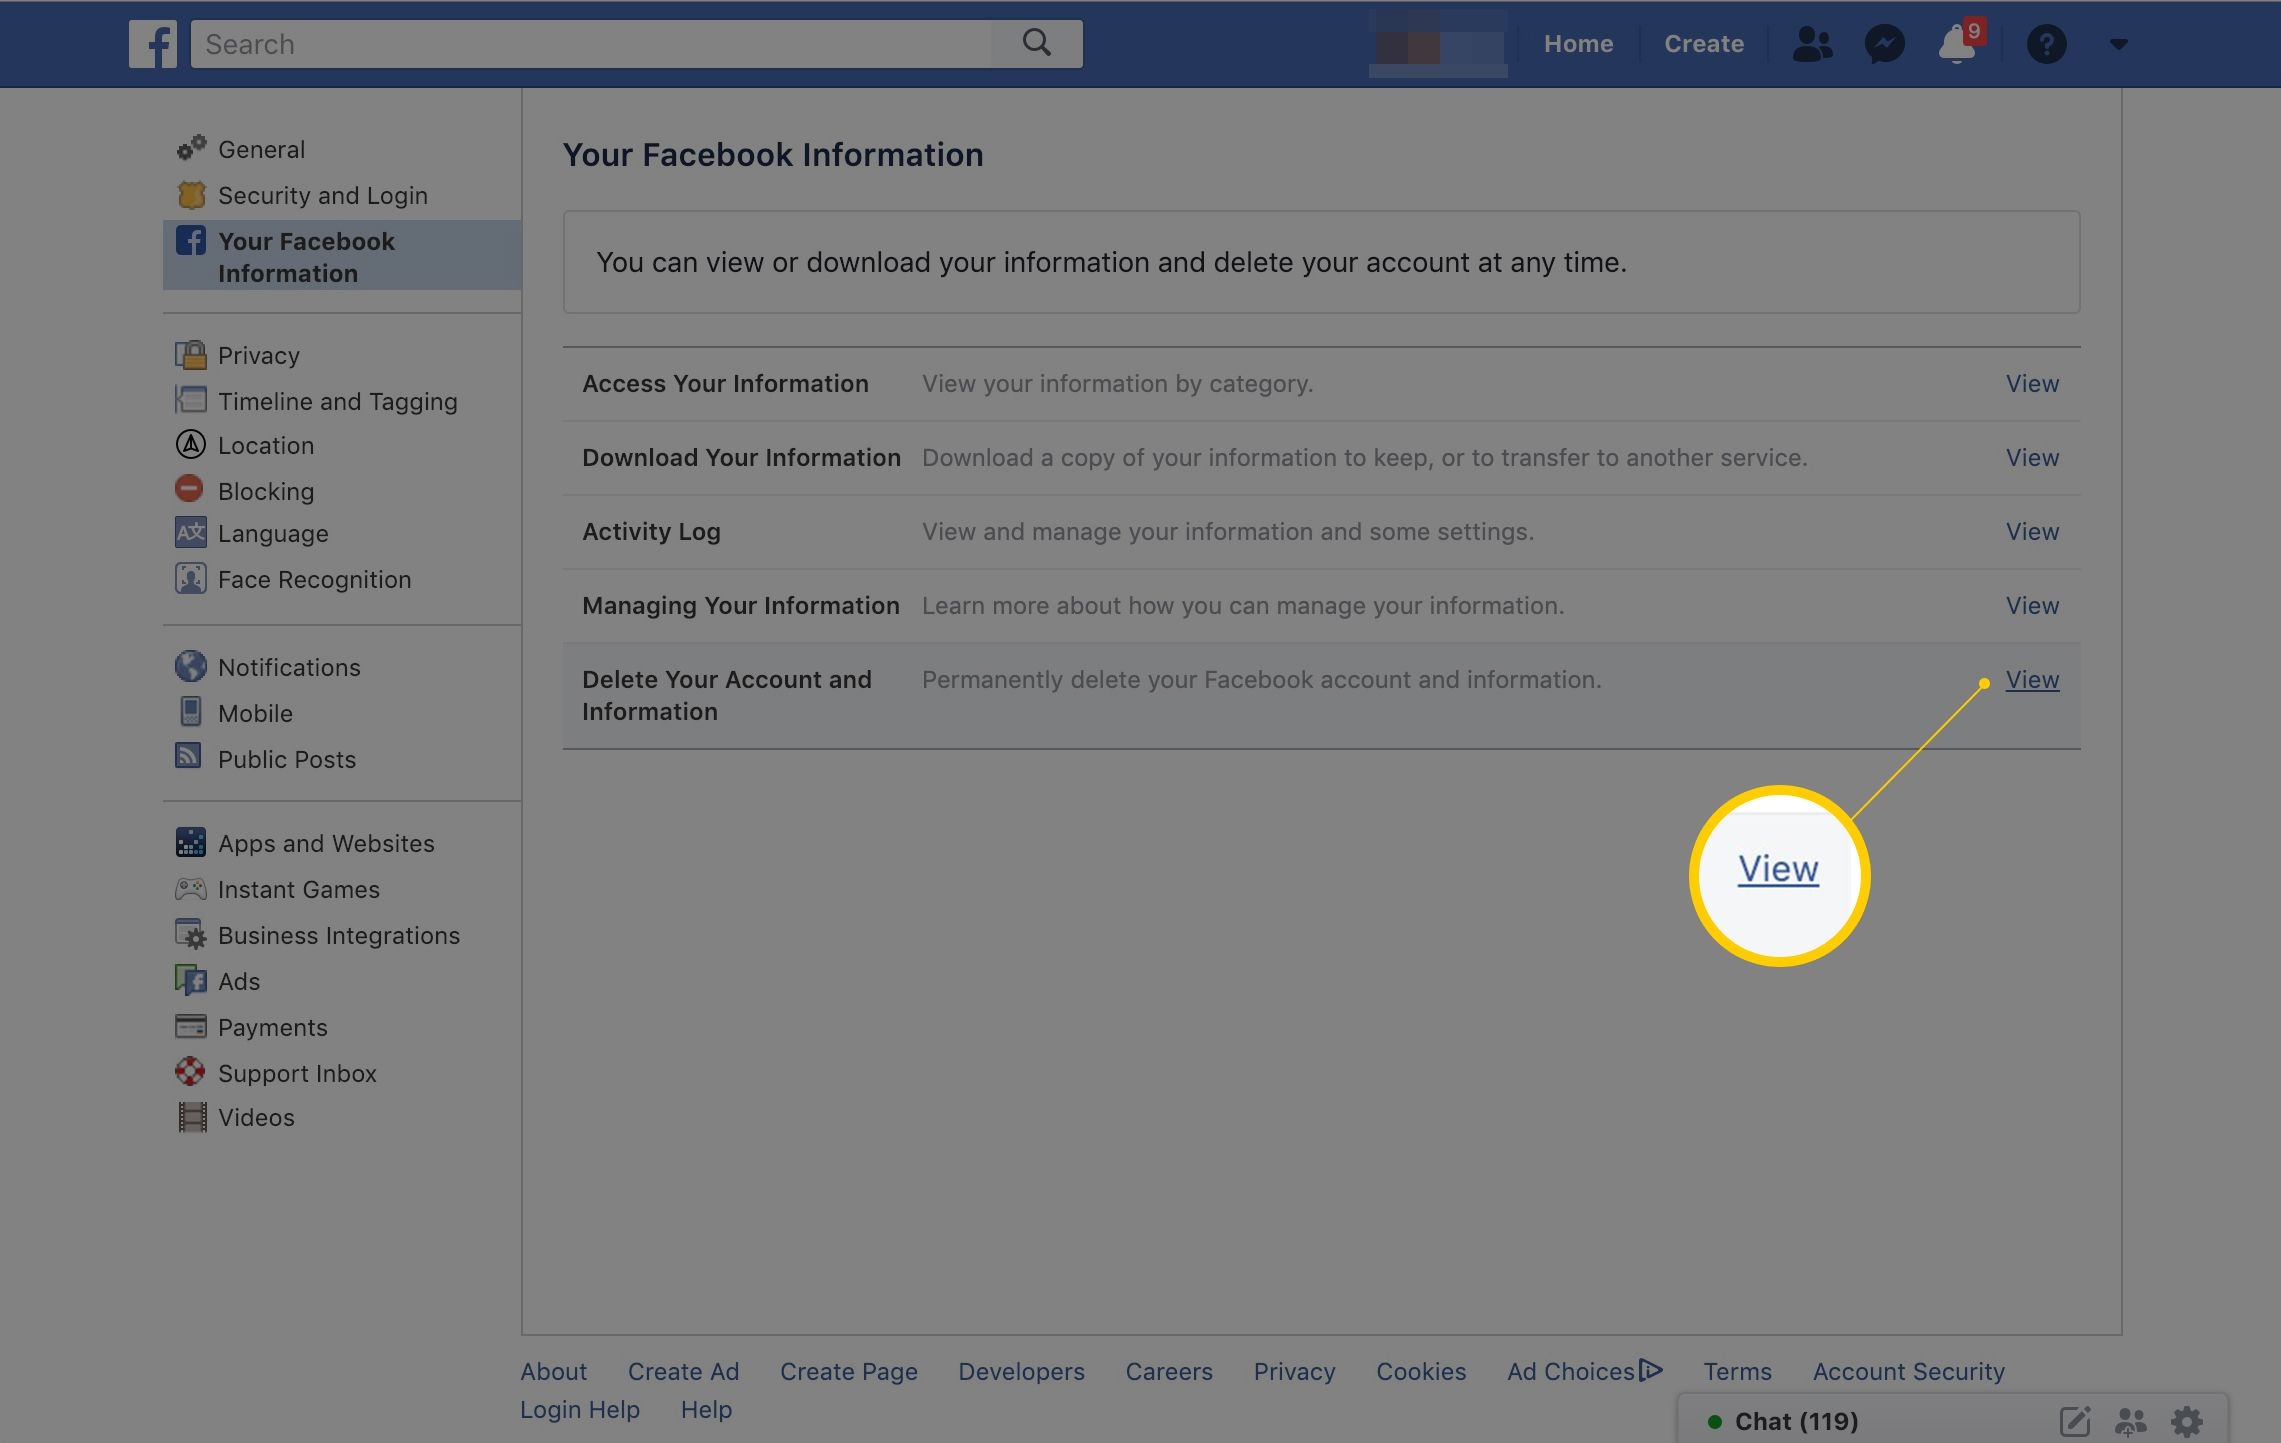 View link next to Delete Your Account and Information on Facebook